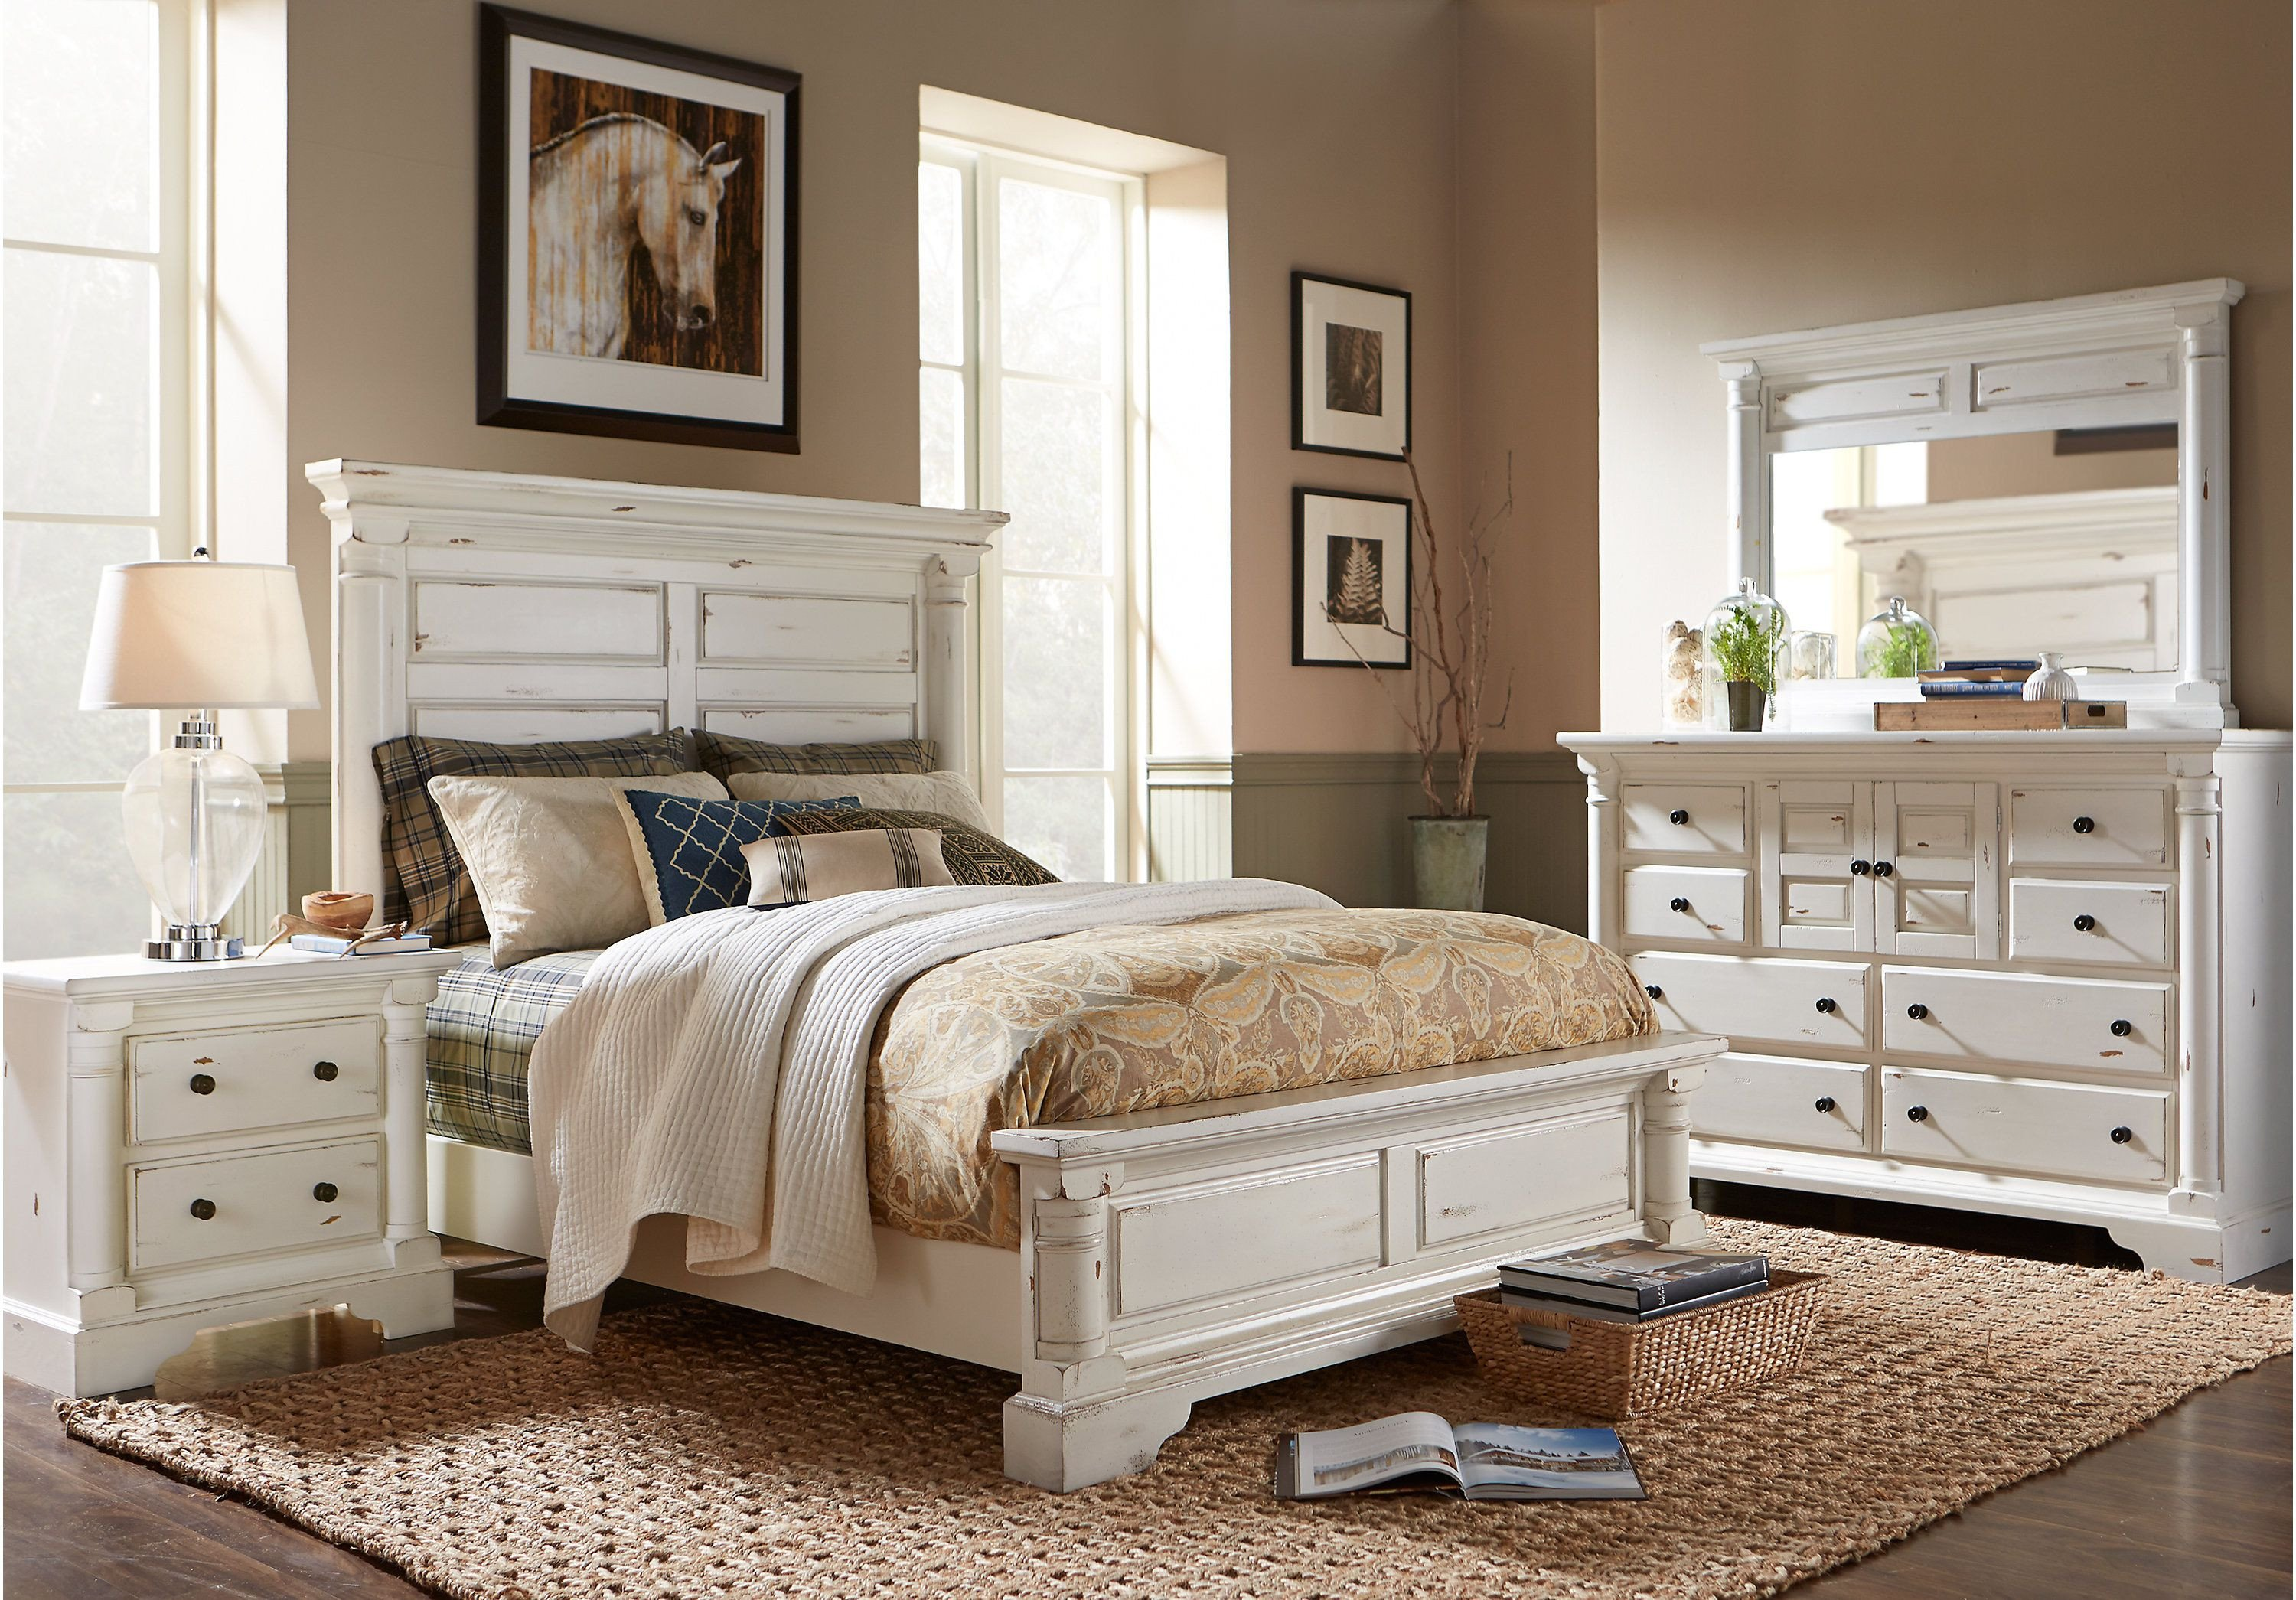 Ashley Furniture Silver Bedroom Set Fresh Claymore Park F White 8 Pc King Panel Bedroom